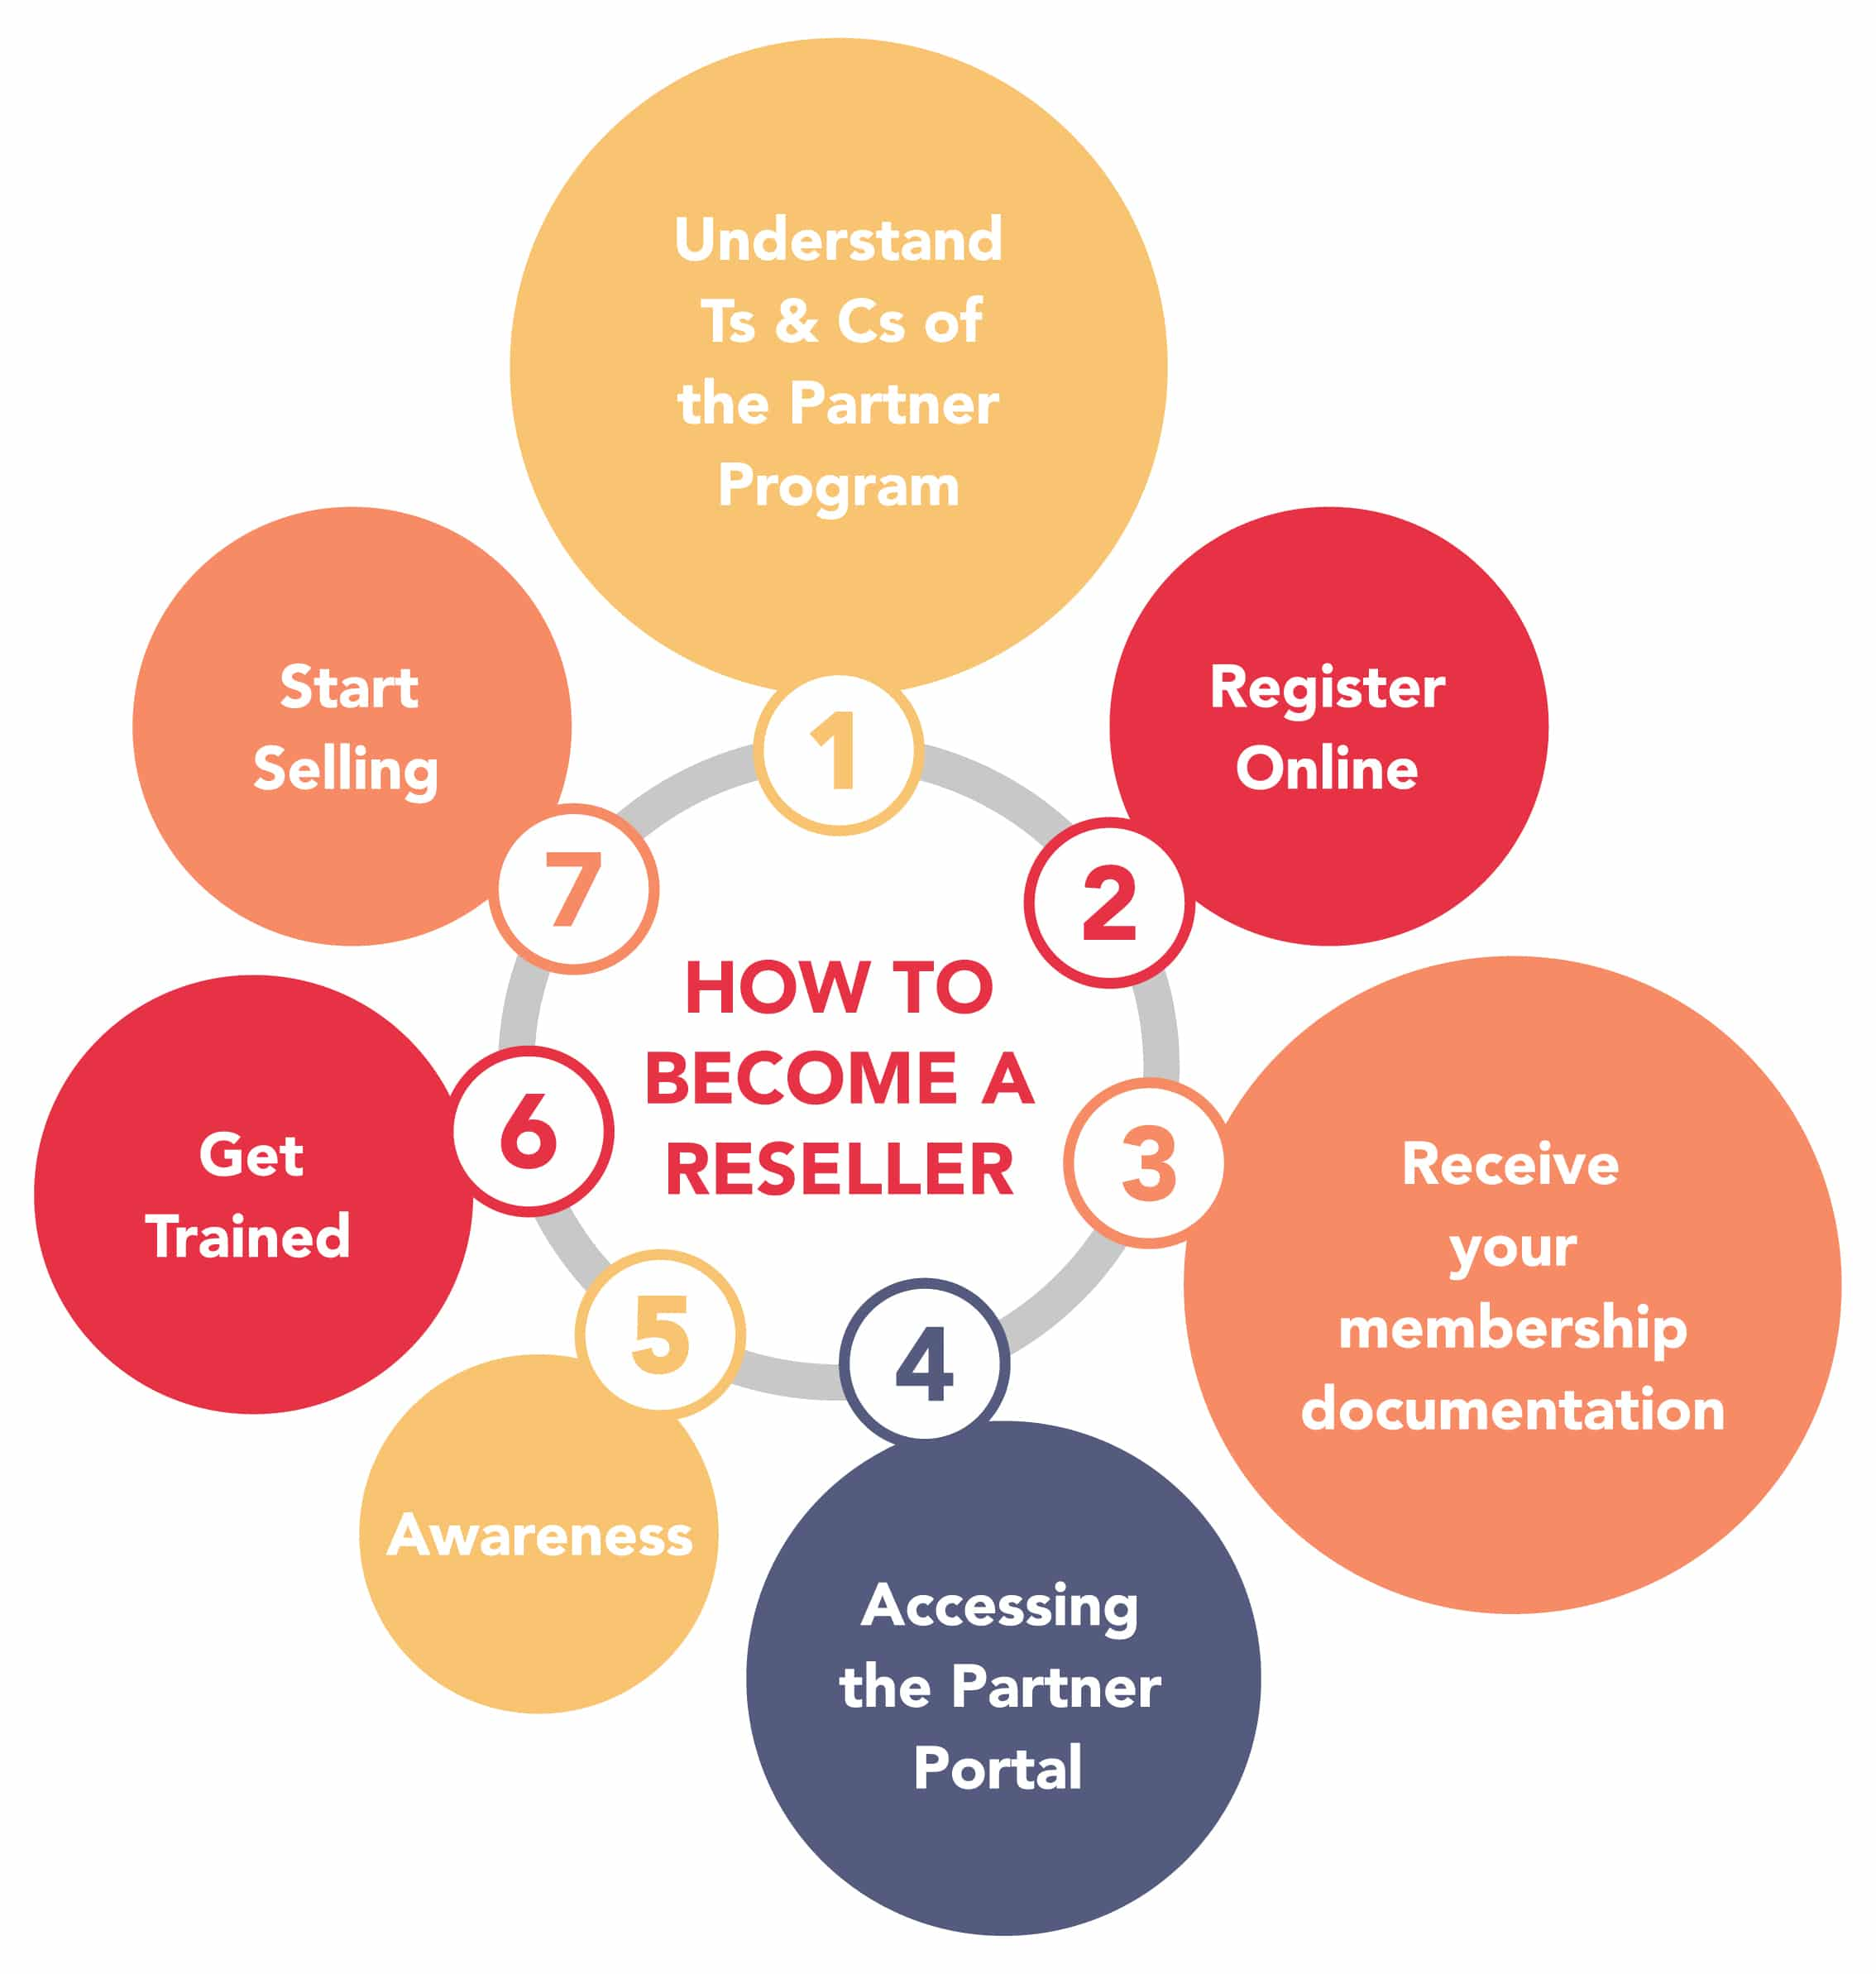 Reseller is a reseller